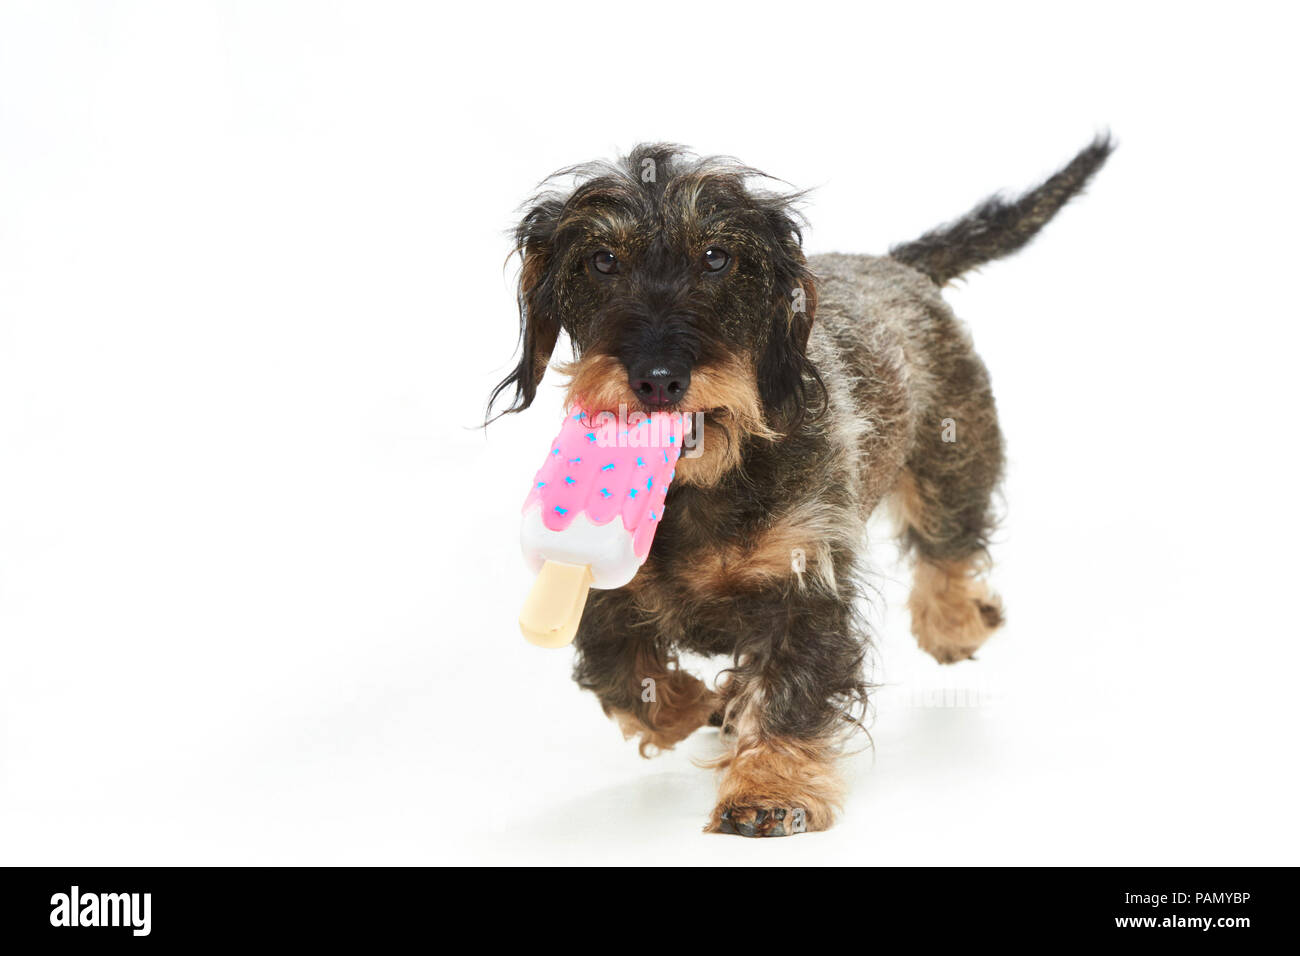 Wire-haired Dachshund. Adult dog carrying an ice toy. Studio picture against a white background. Germany.. Stock Photo